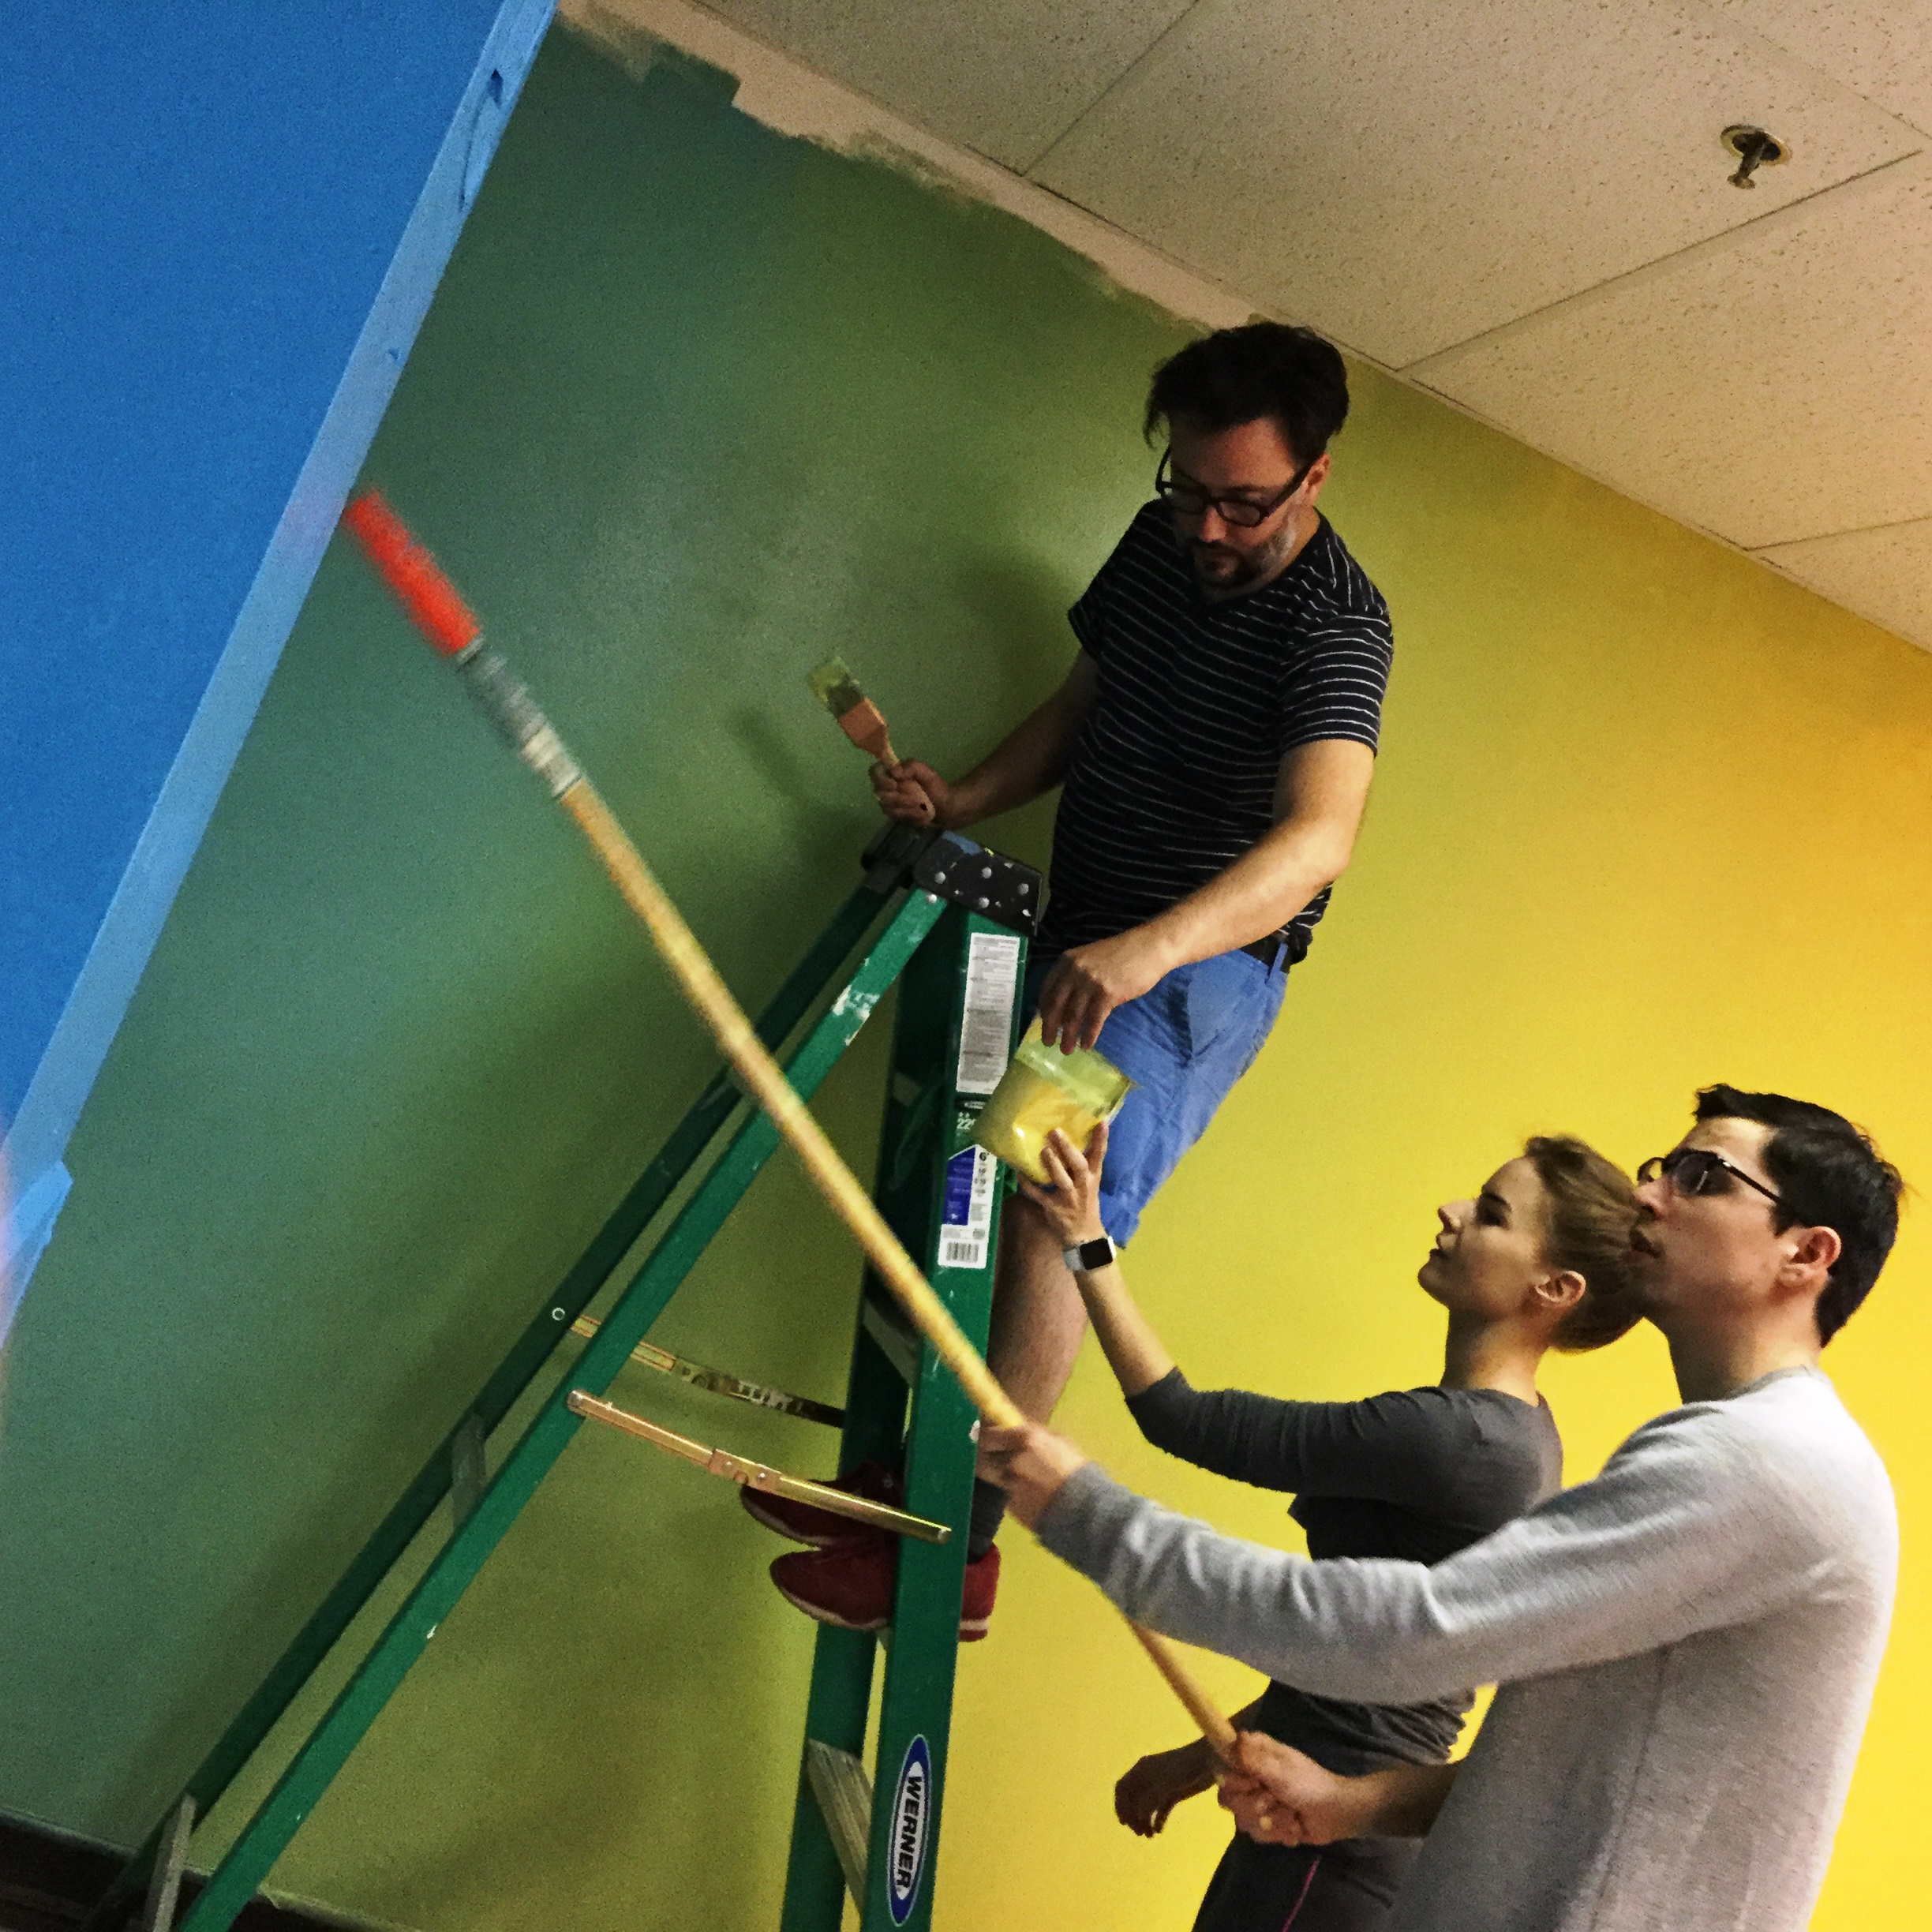 UMKC Students Paint Mural for Goodwill